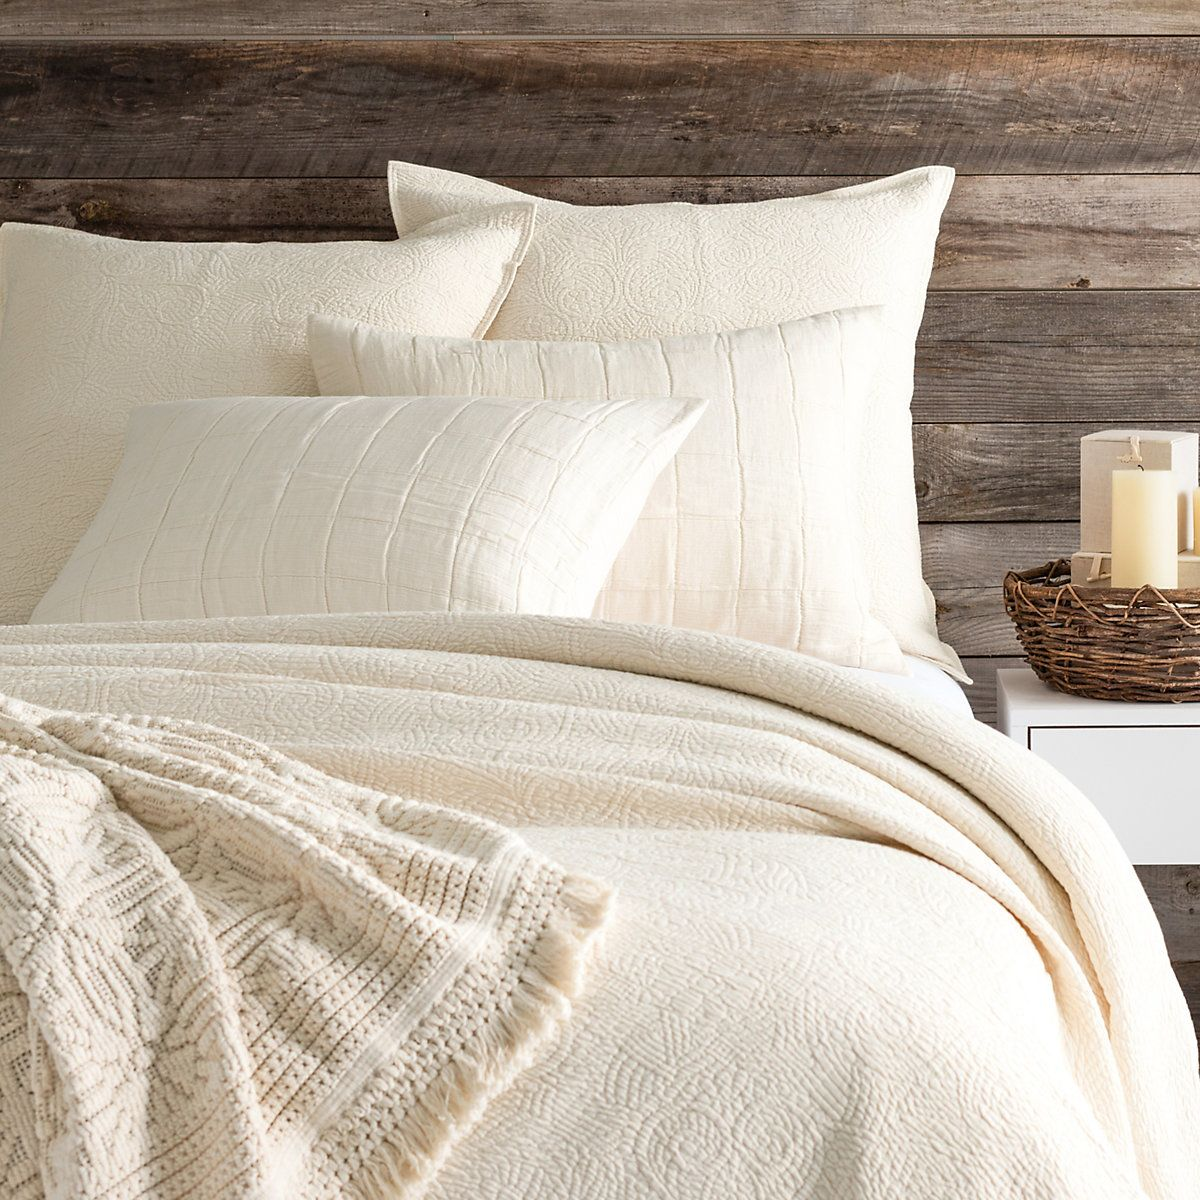 Elizabeth Ivory Matelasse Coverlet The Outlet Ivory Bedding